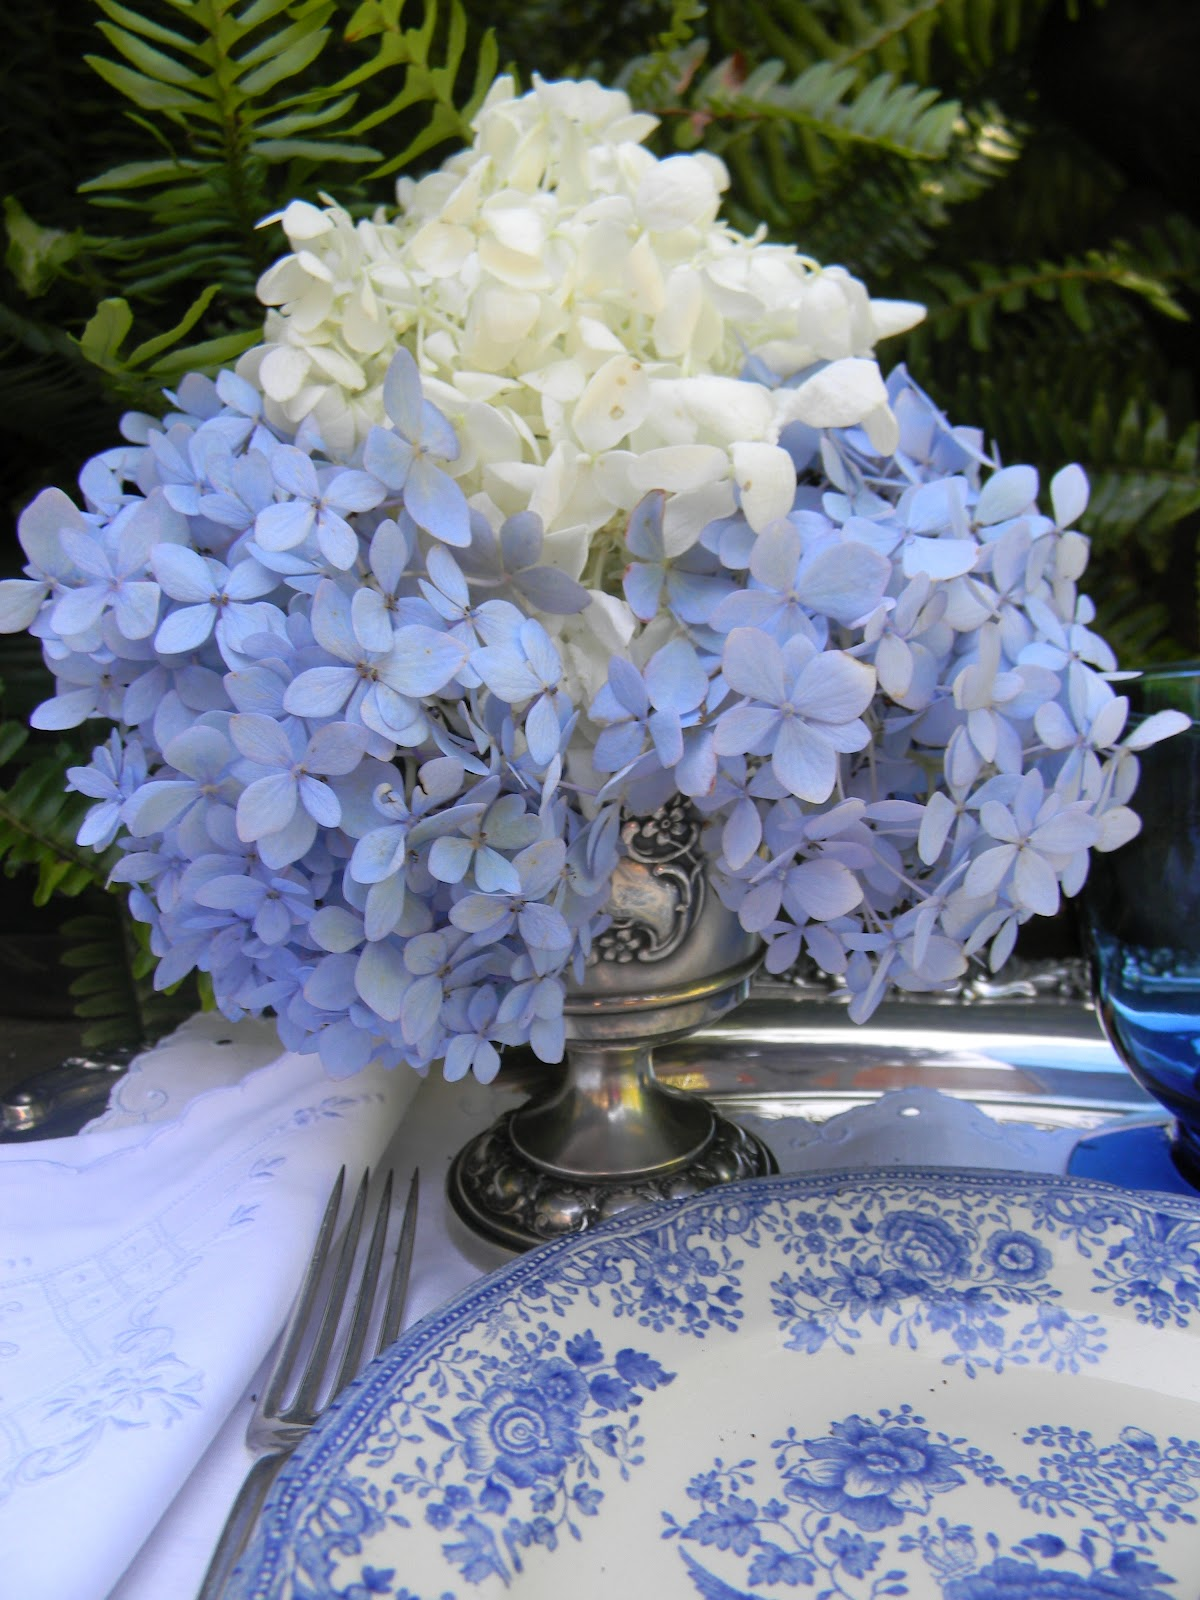 A Toile Tale Blue And White Hydrangeas With Asiatic Pheasant